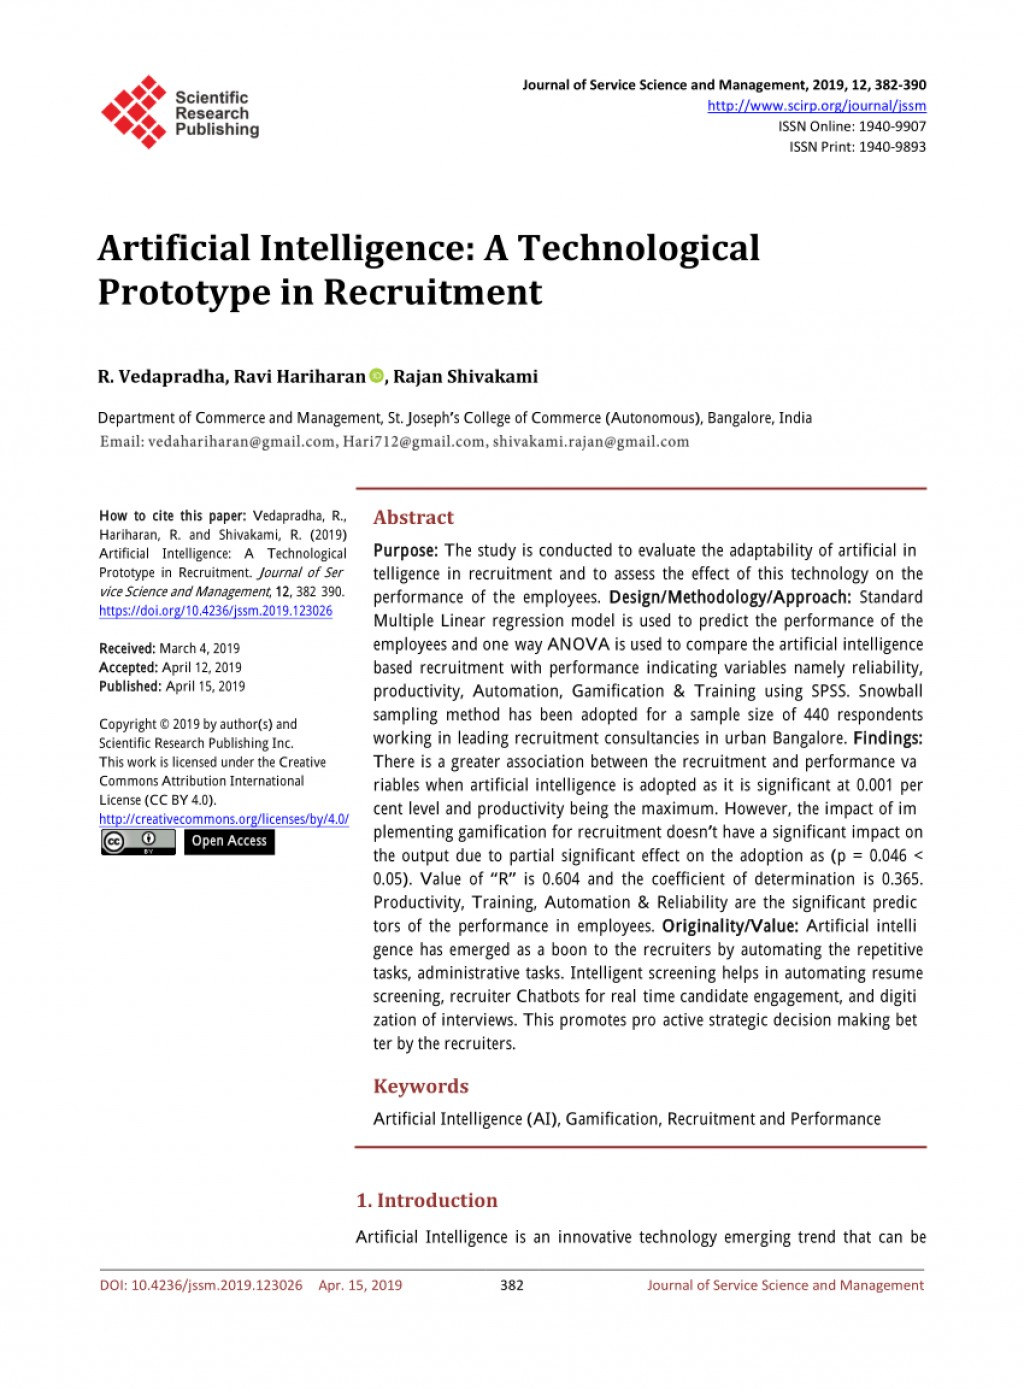 017 Artificial Intelligence Research Paper Awful 2019 Large